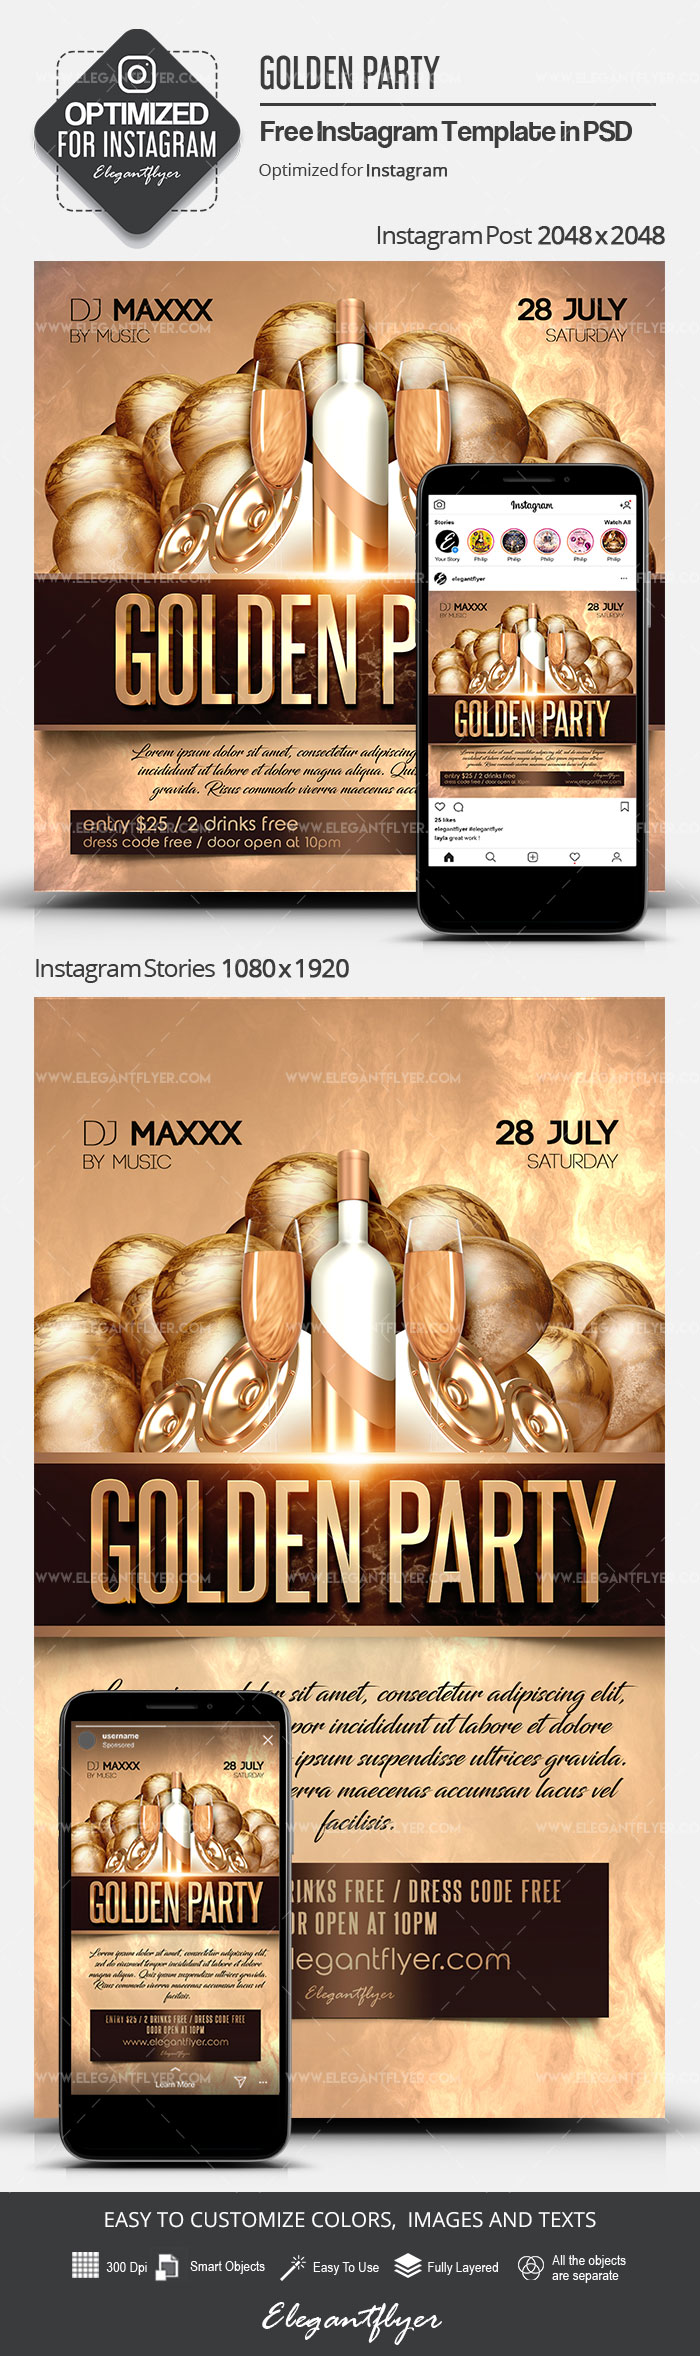 Golden Party – Free Instagram Stories Template in PSD + Post Templates